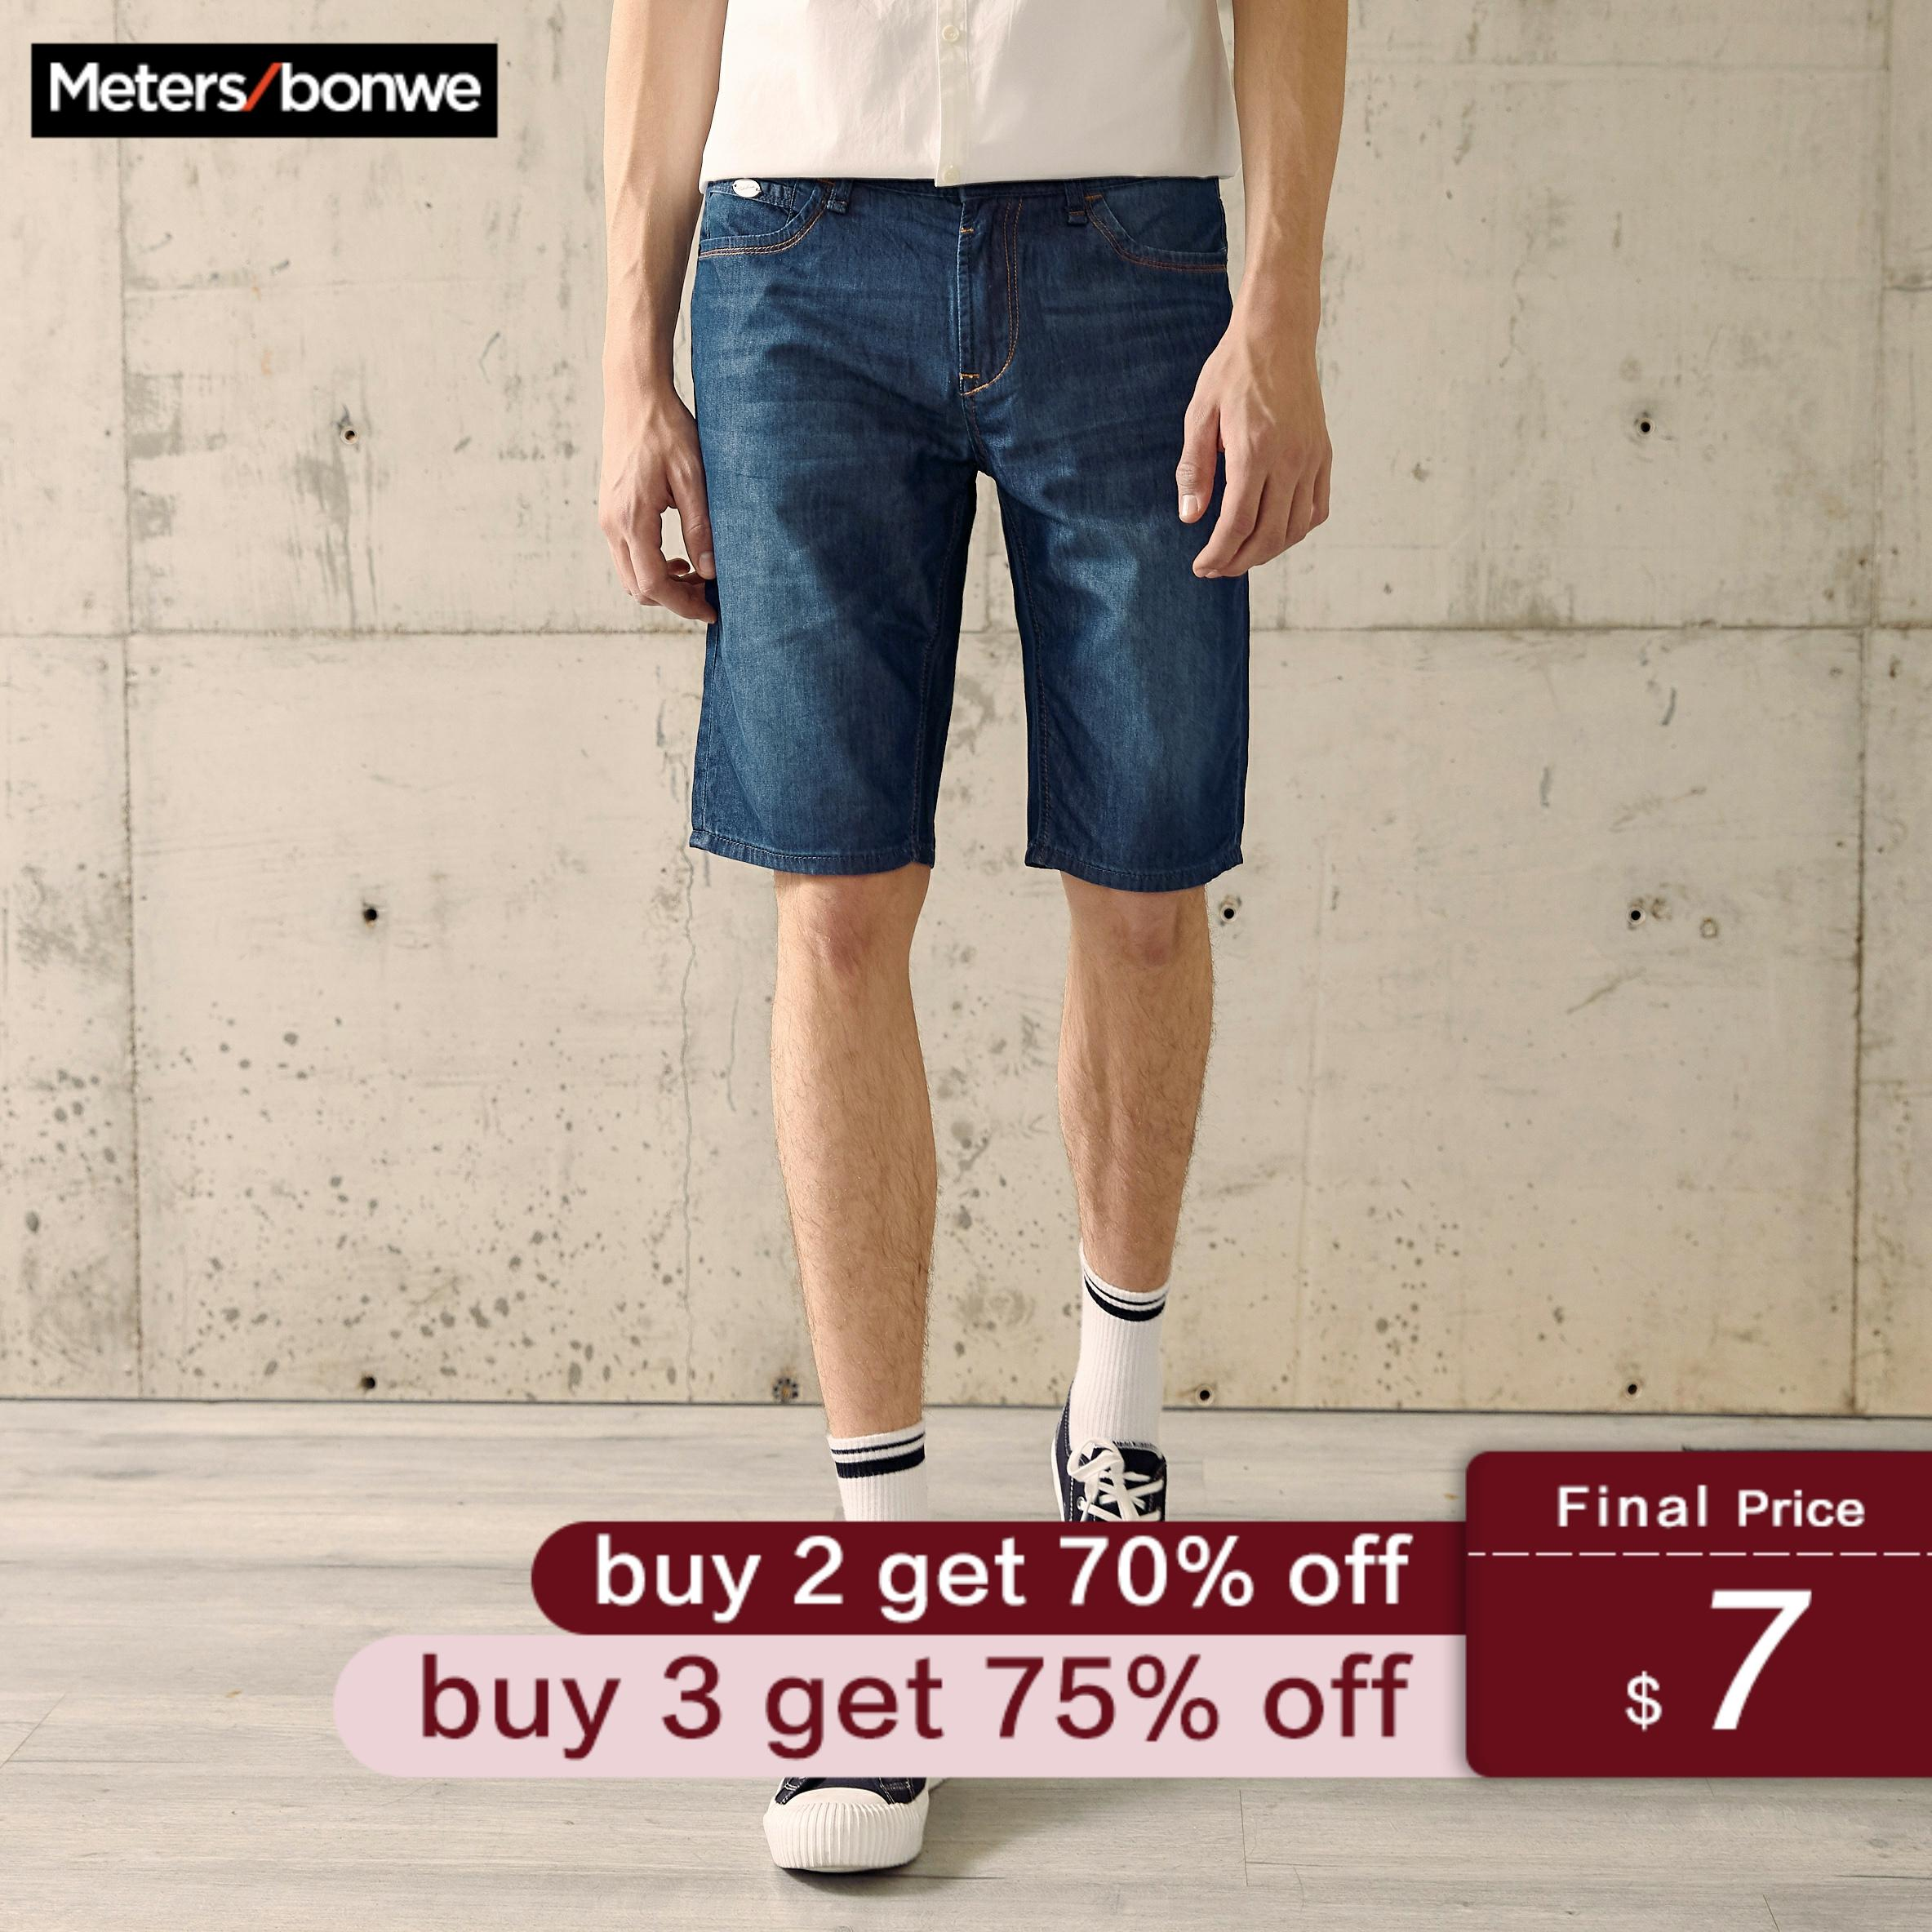 Metersbonwe 2020 New Men's Summer Casual Denim Shorts Fashion Trend Style Streetwear Shorts Solid Color Breathable Thin Shorts